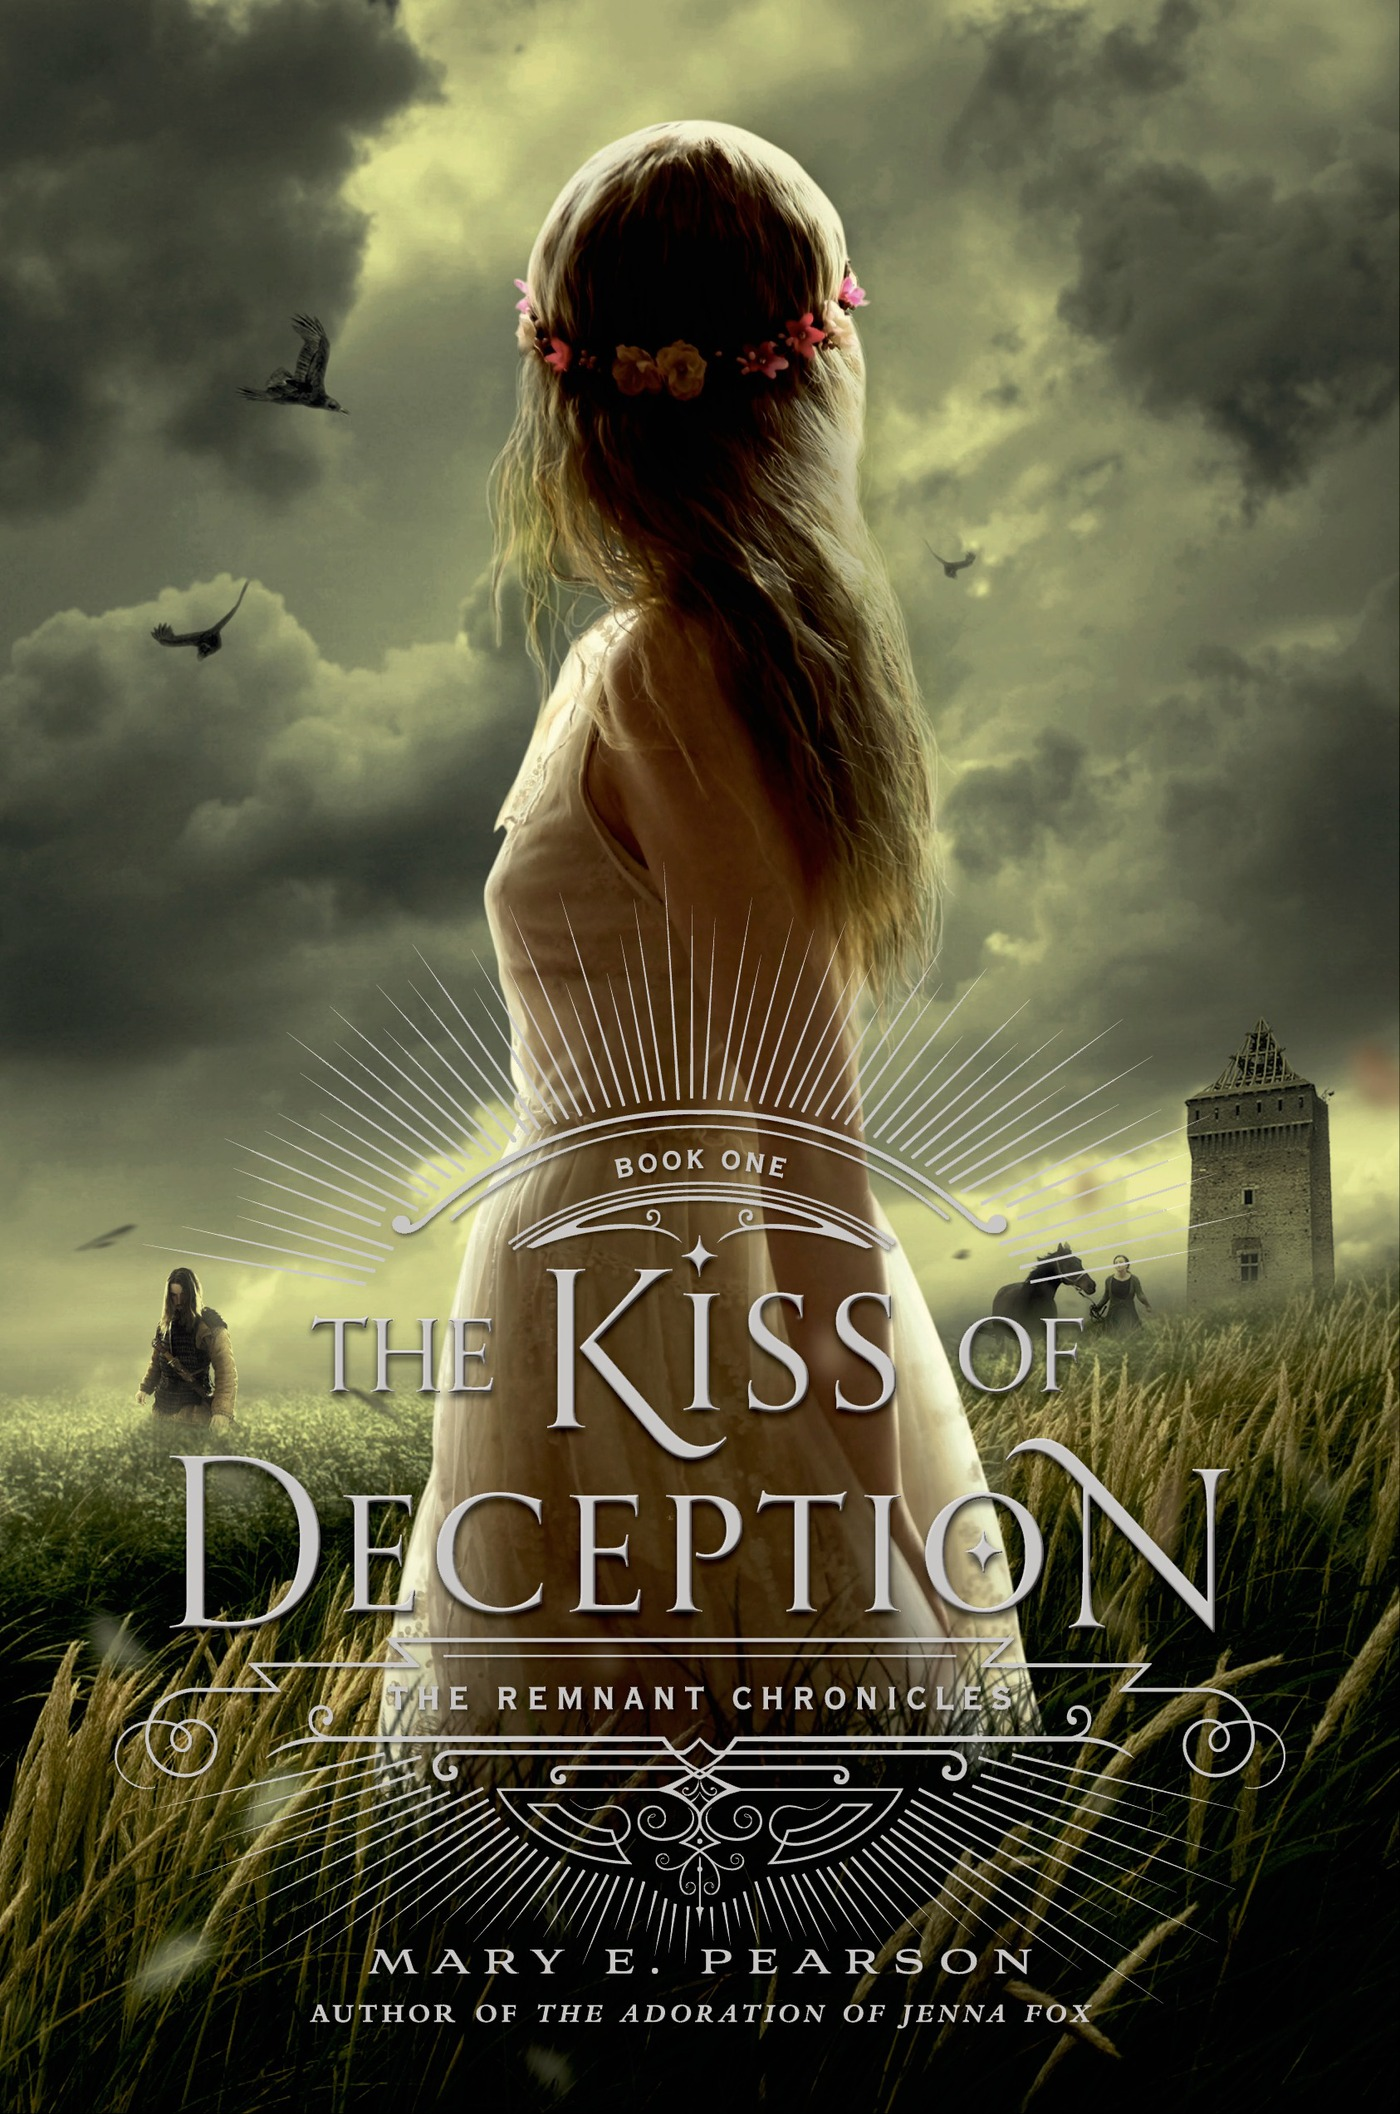 The kiss of deception cover image